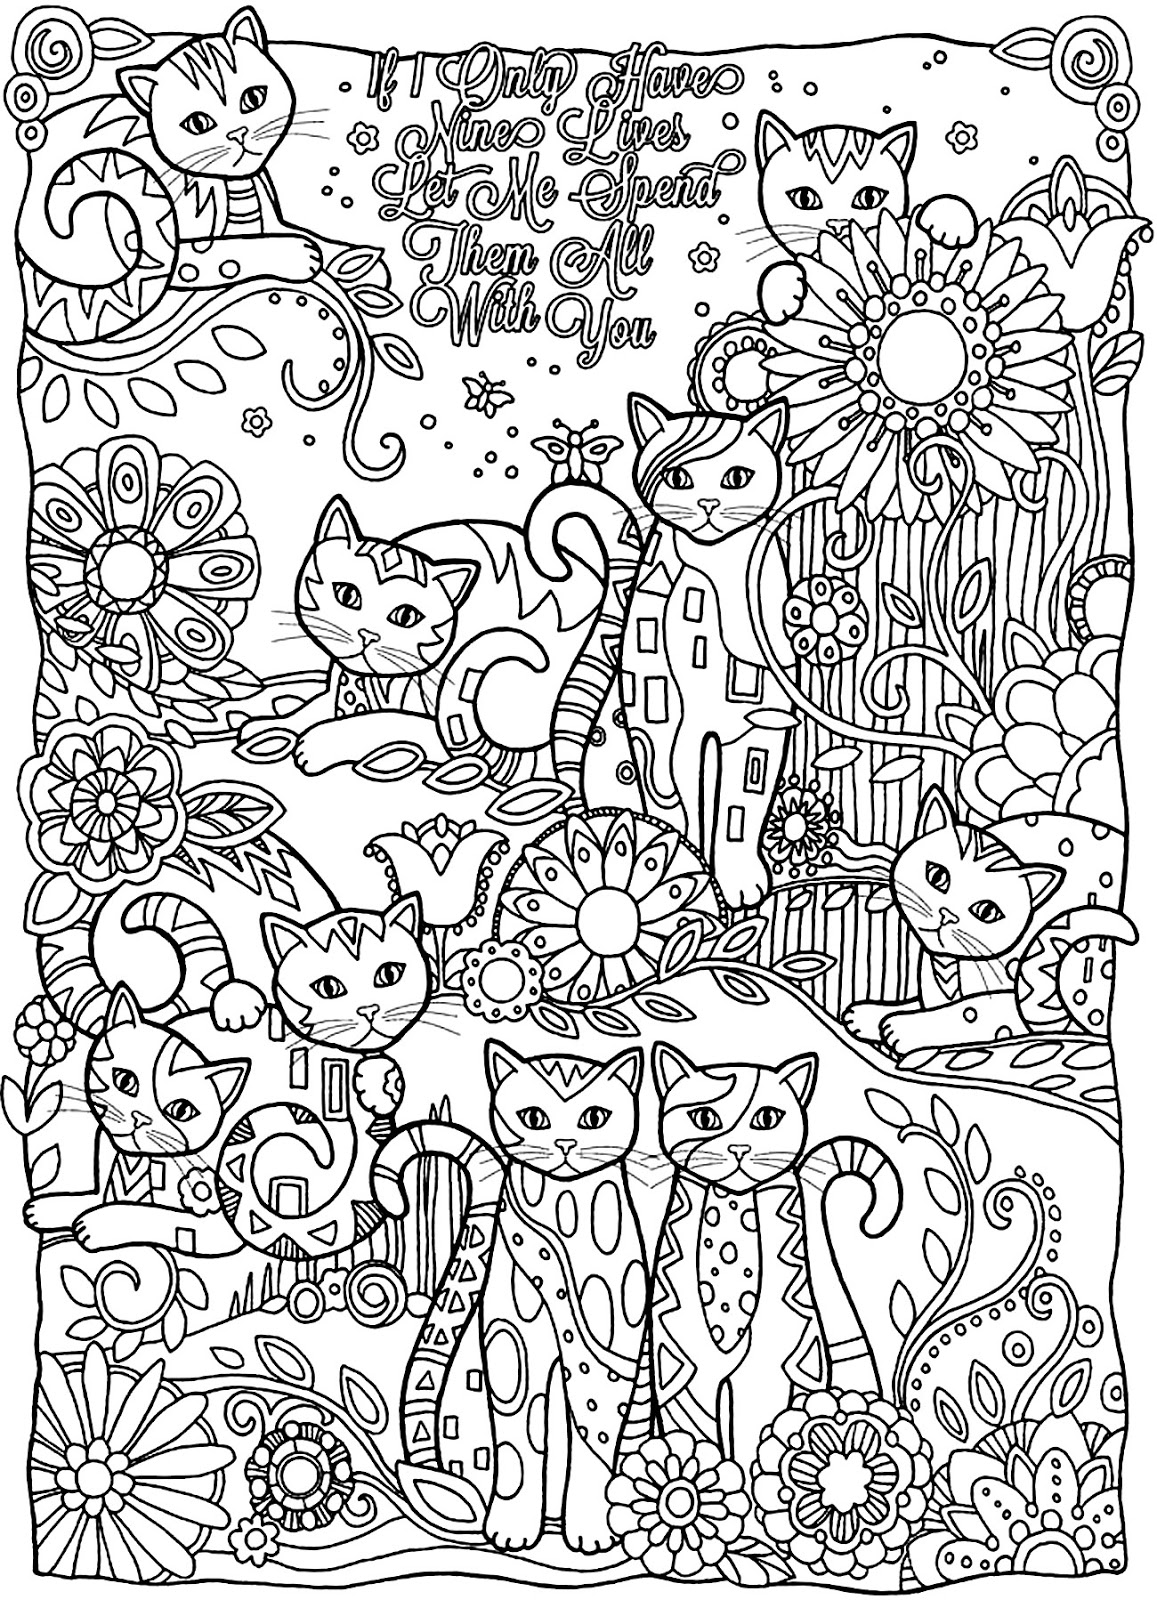 Coloring page world for Garden 50 designs to help you destress